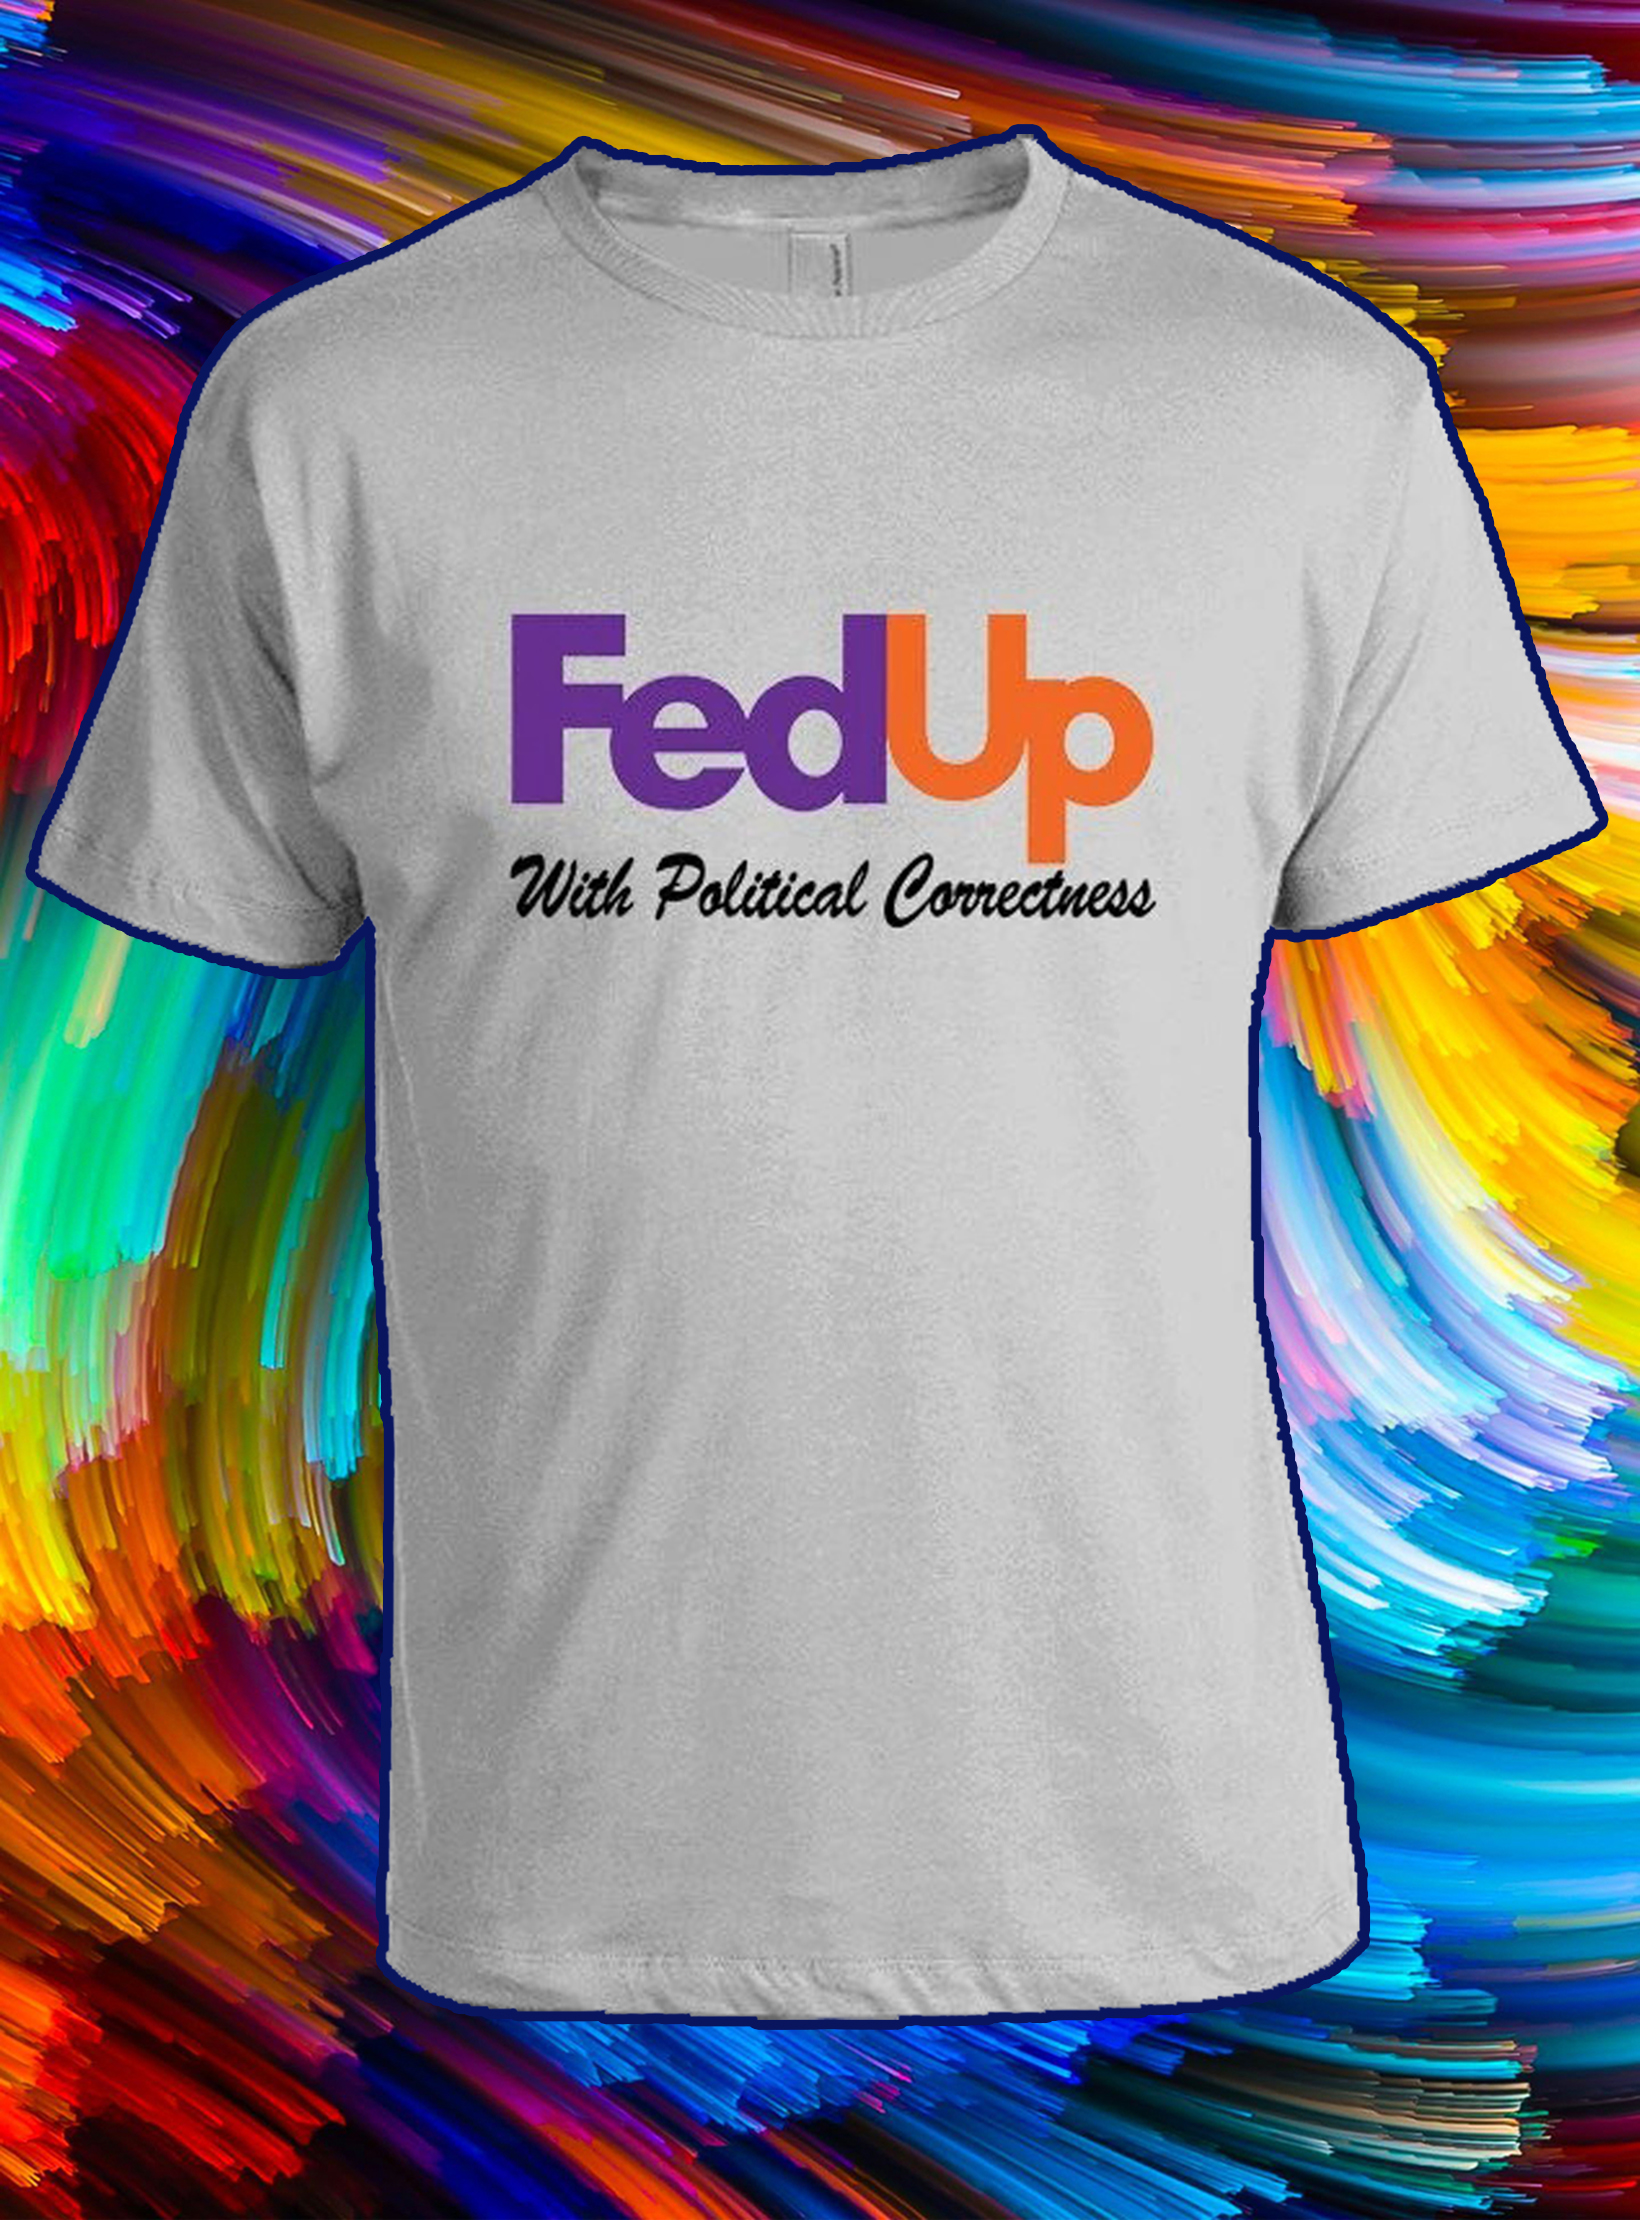 Fed up with political correctness shirt - M